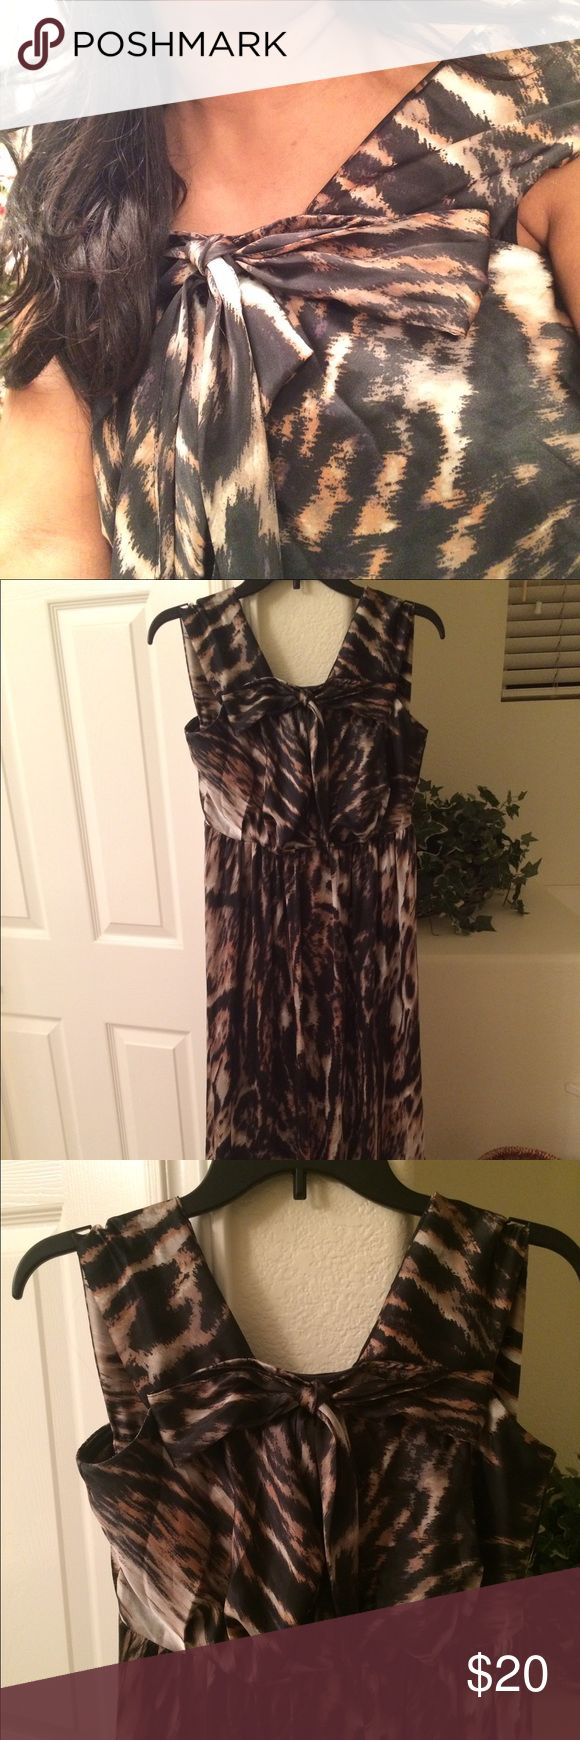 Leopard Print Maxi Dress by H & M Comfortable & Stylish Maxi Dress Hidden Zipper in back ~Fully Lined add a Blazer or layer for the weather 👗 Machine Washable made of 100% Polyester H & M Dresses Maxi